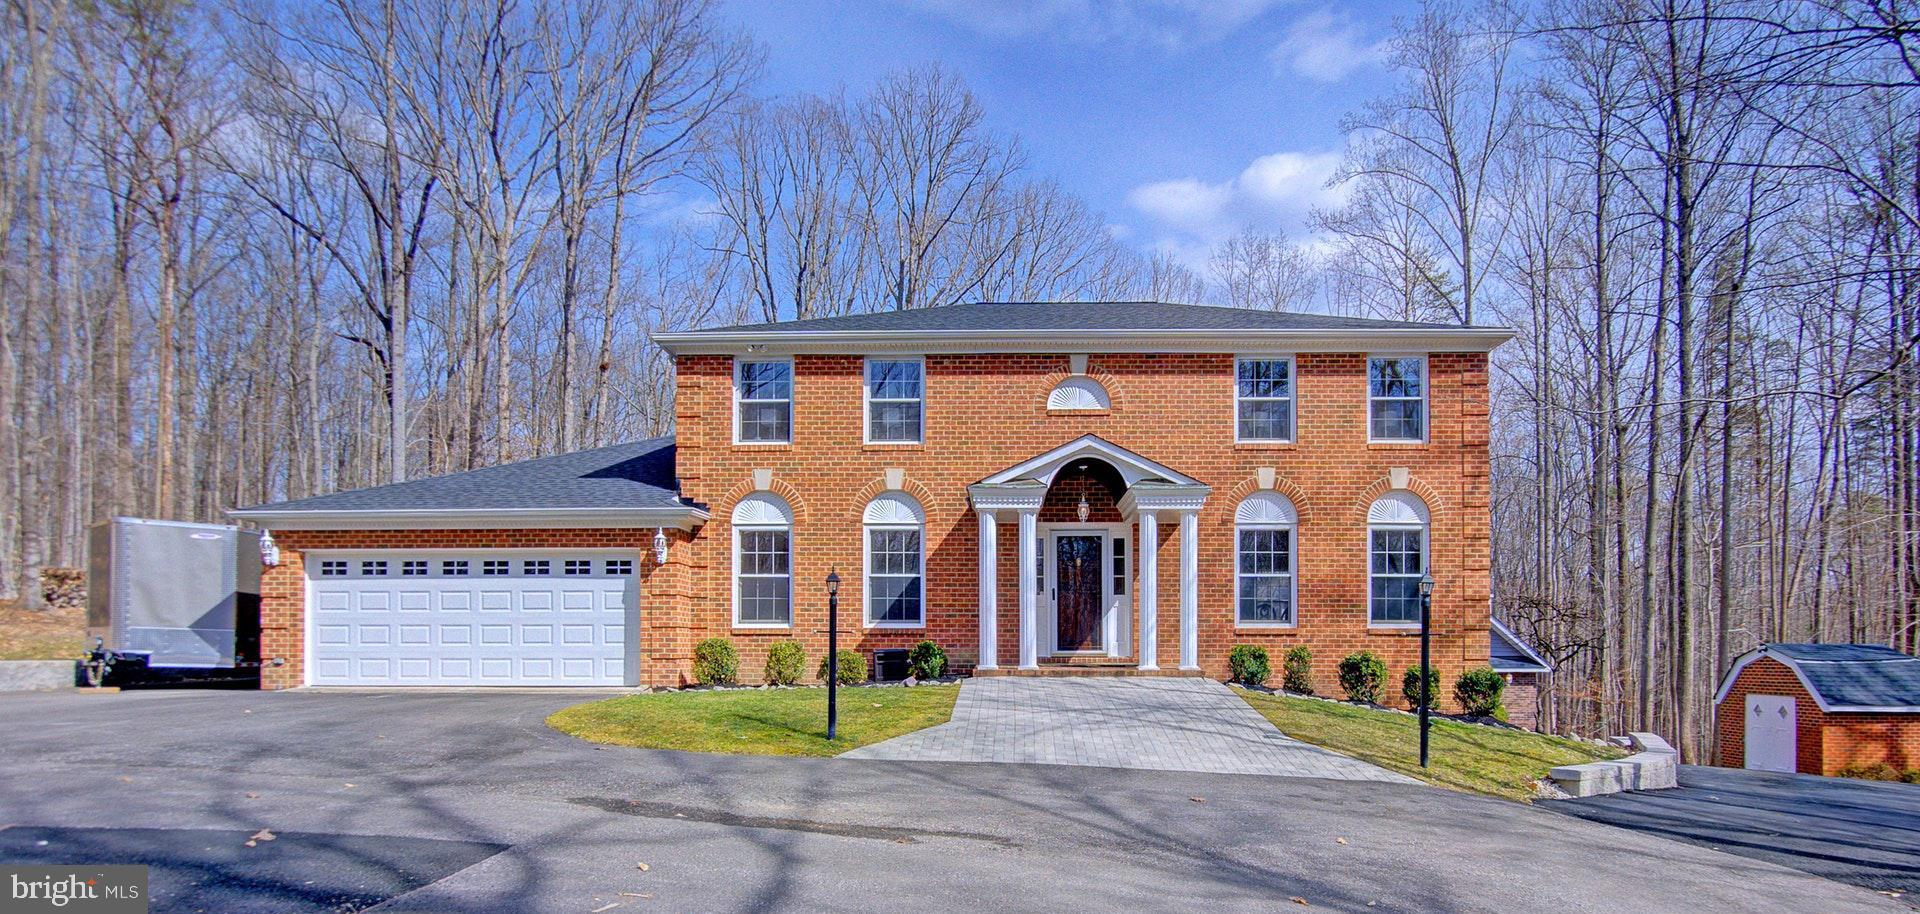 8001 EDDY BEND TRAIL, FAIRFAX STATION, VA 22039